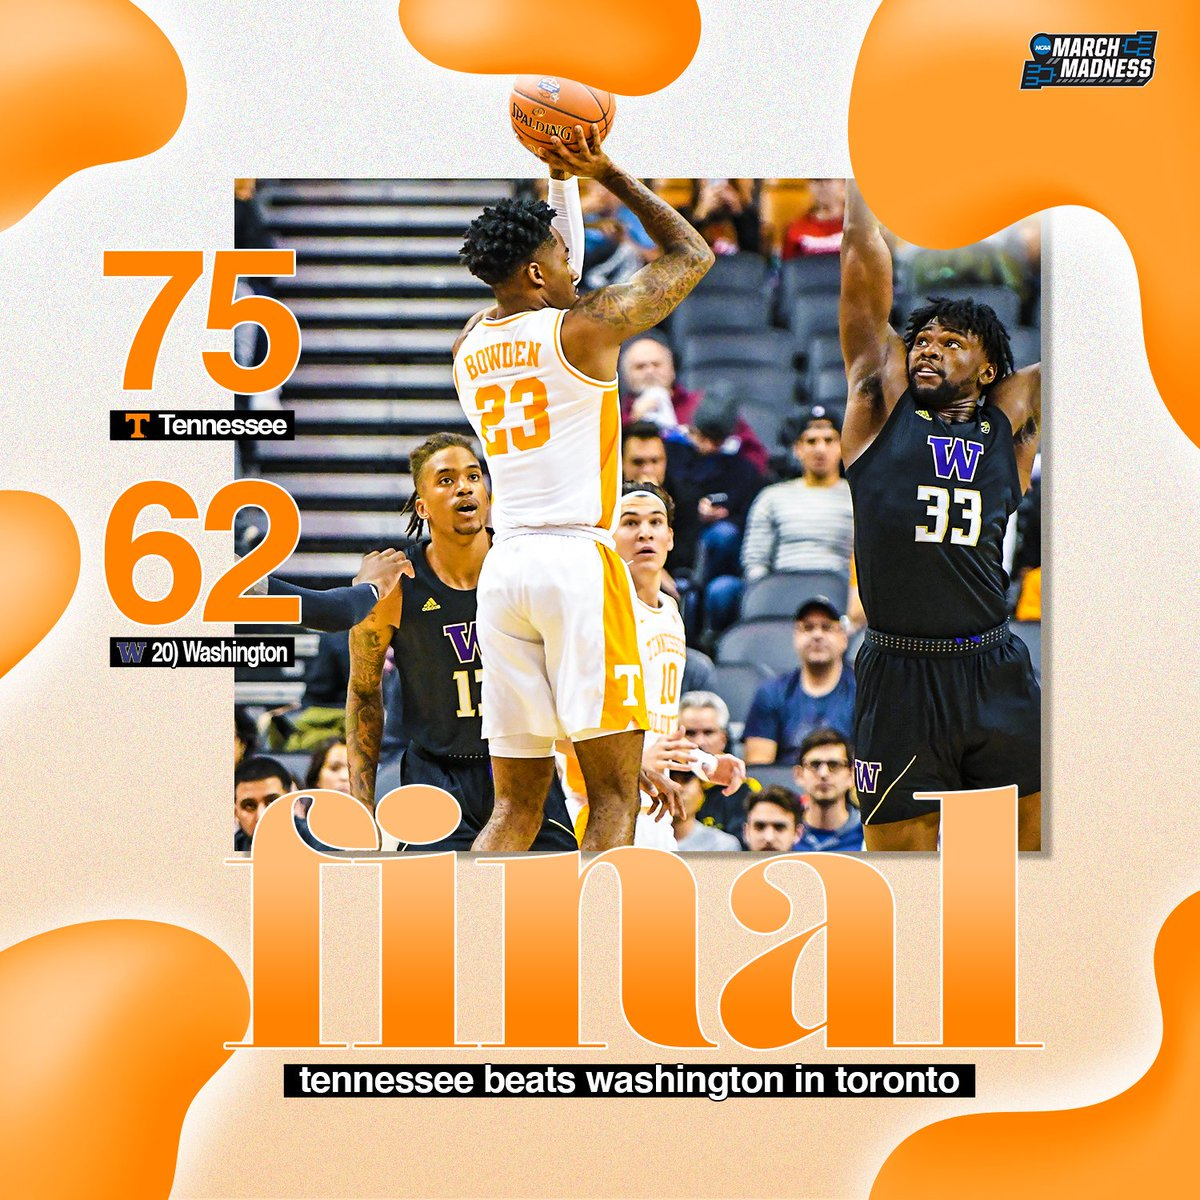 The #MapleVols get the W in Toronto!   Tennessee knocks off No. 20 Washington in the James Naismith Classic! #GBO<br>http://pic.twitter.com/UOfhH6A6er